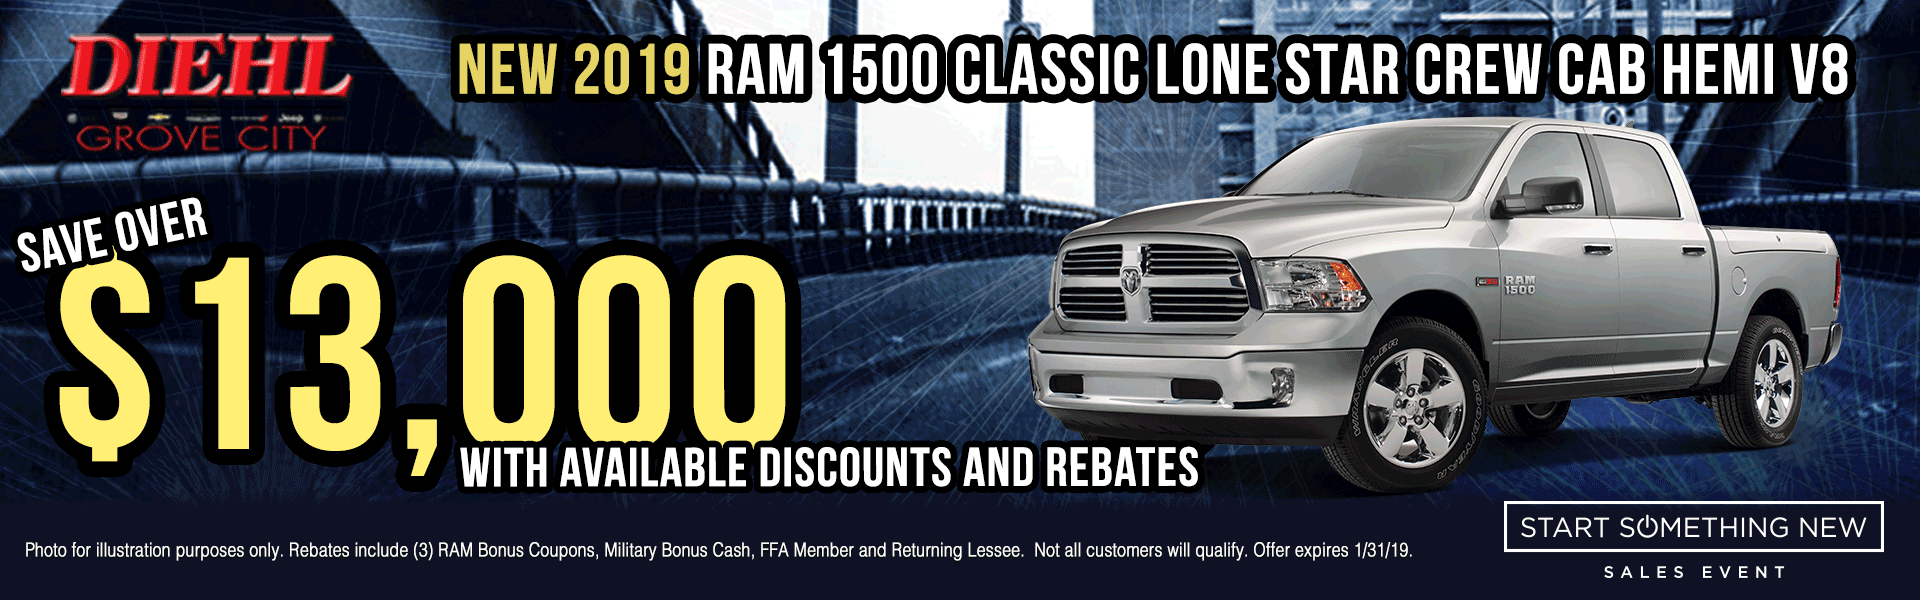 R621-2019-RAM-1500-CLASSIC-LONESTAR-CREW-CAB-HEMI-V8 Start Something New Sales Event Chrysler Specials Dodge Specials Jeep Specials RAM Specials grove city specials Diehl specials Diehl Automotive grove city lease specials